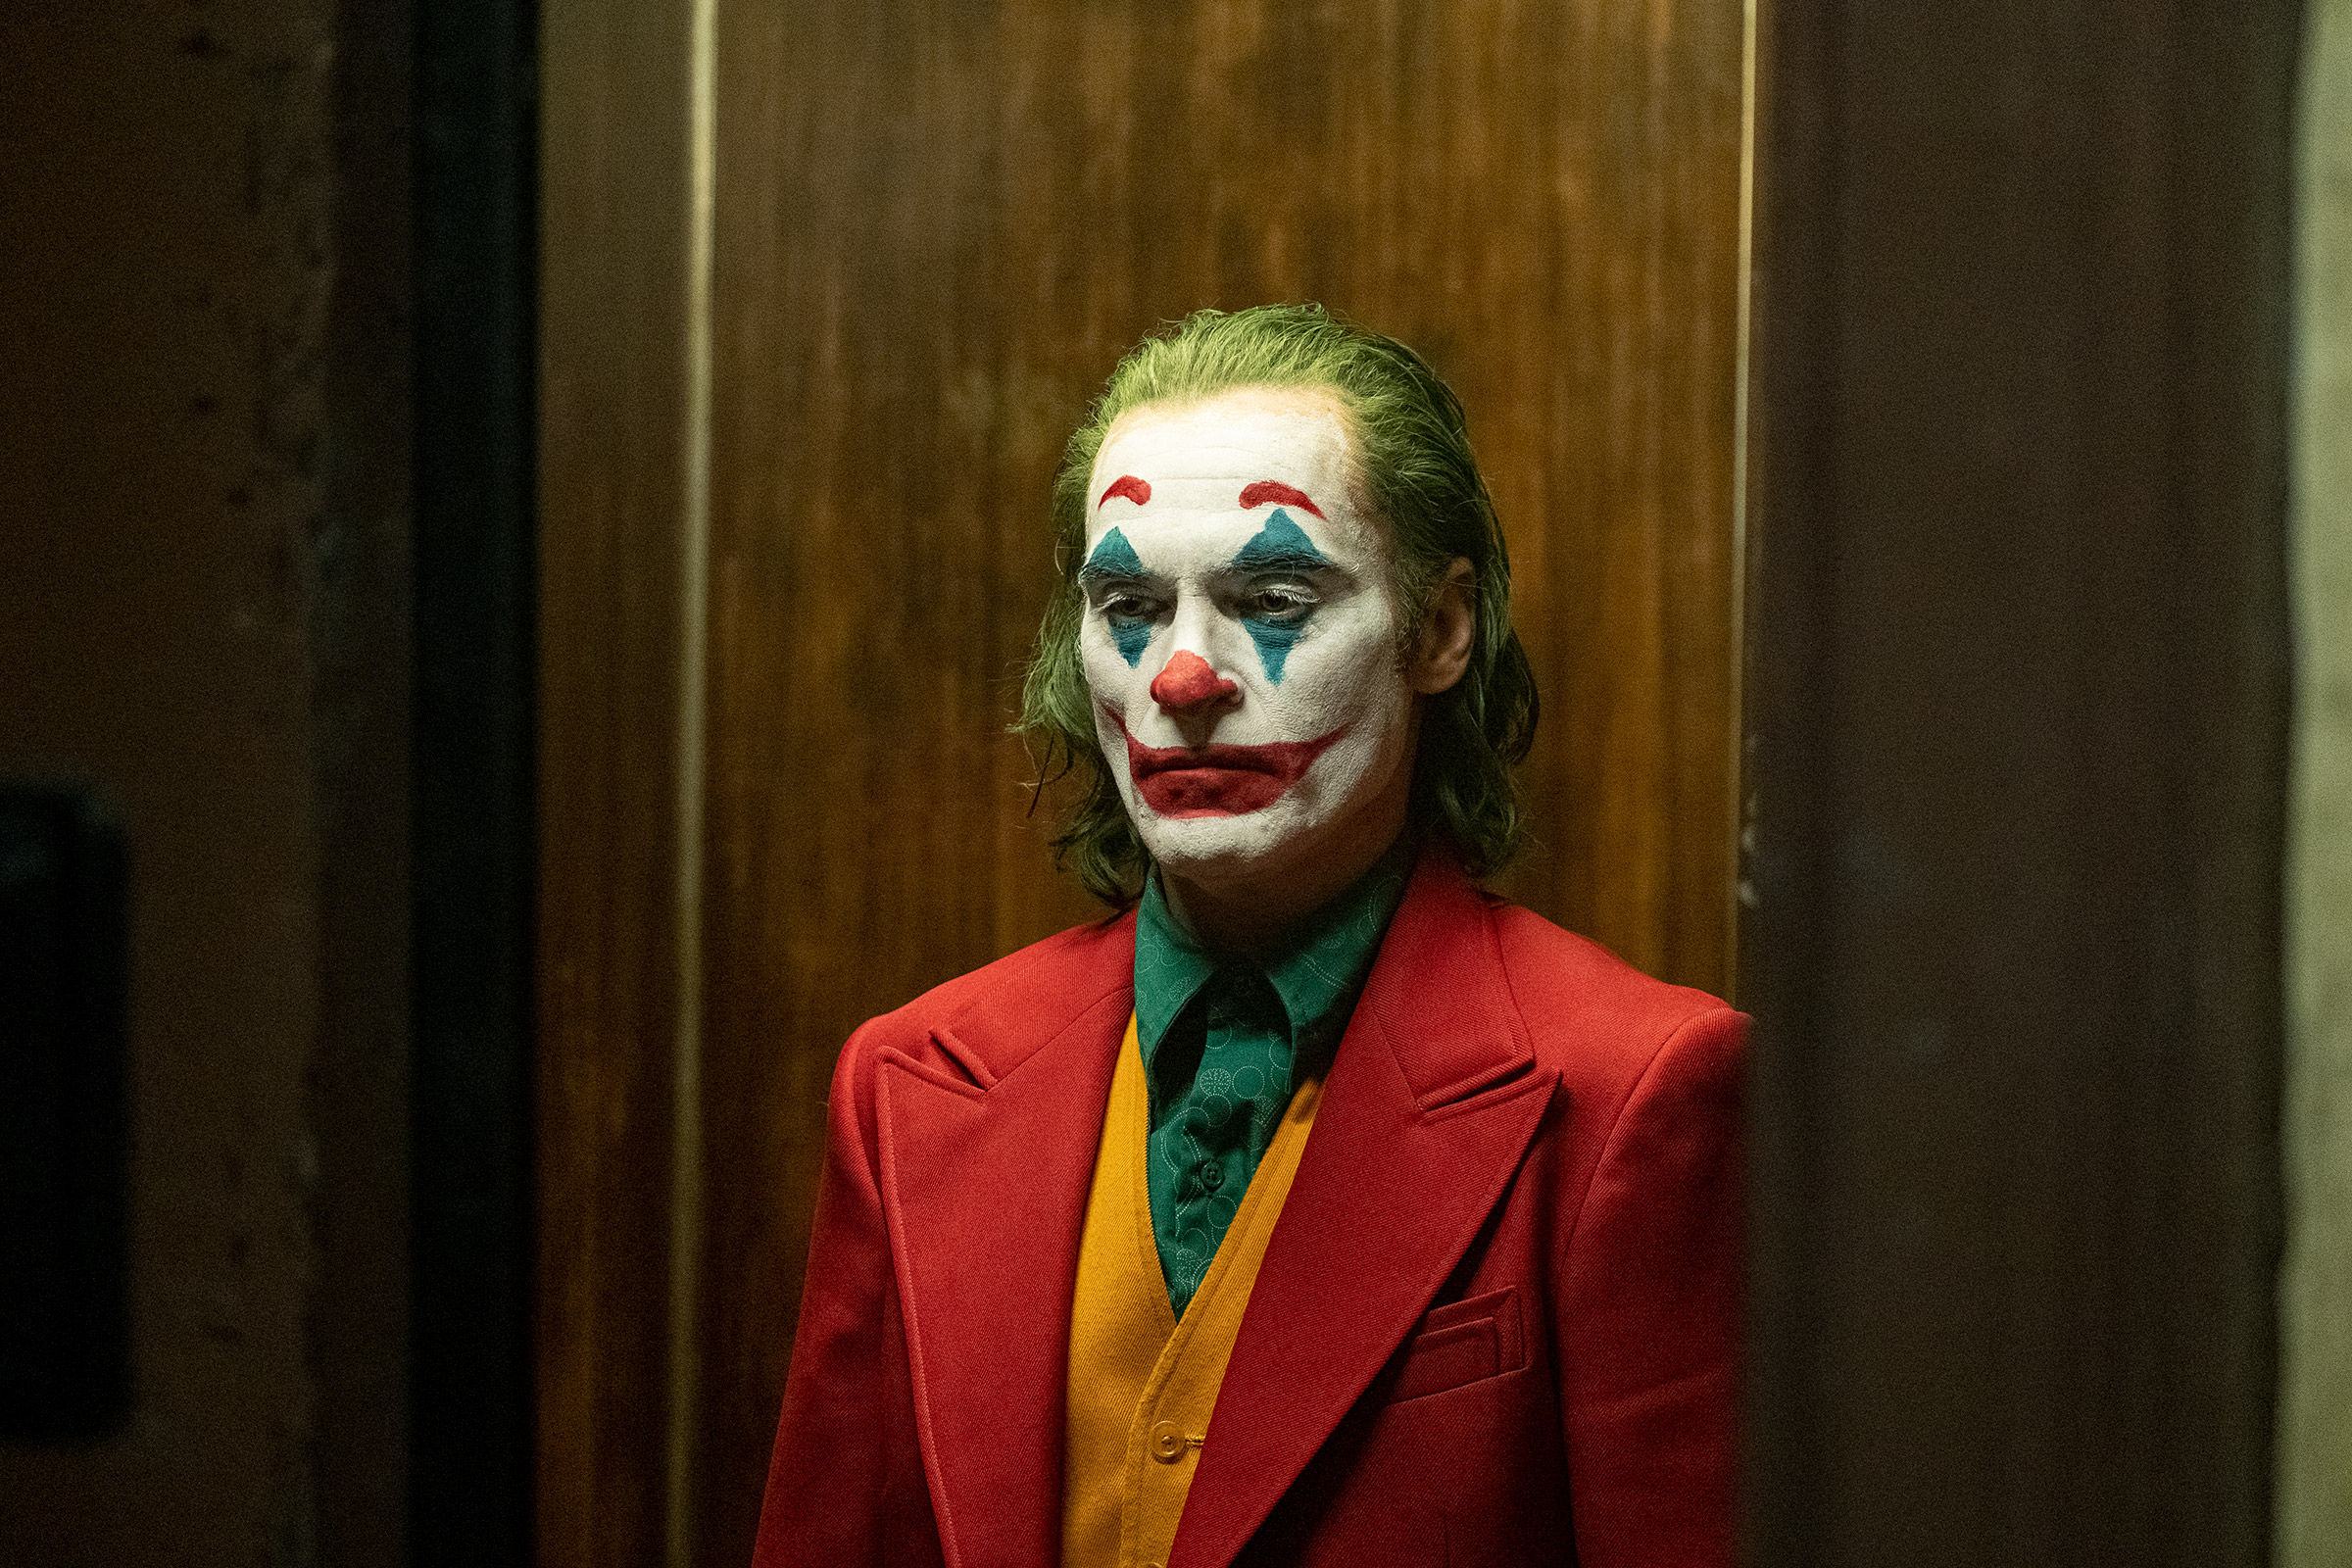 Todd Phillips' dark take on Joker earned 11 nominations, including Actor in a Leading Role for star Joaquin Phoenix, Adapted Screenplay and Best Picture